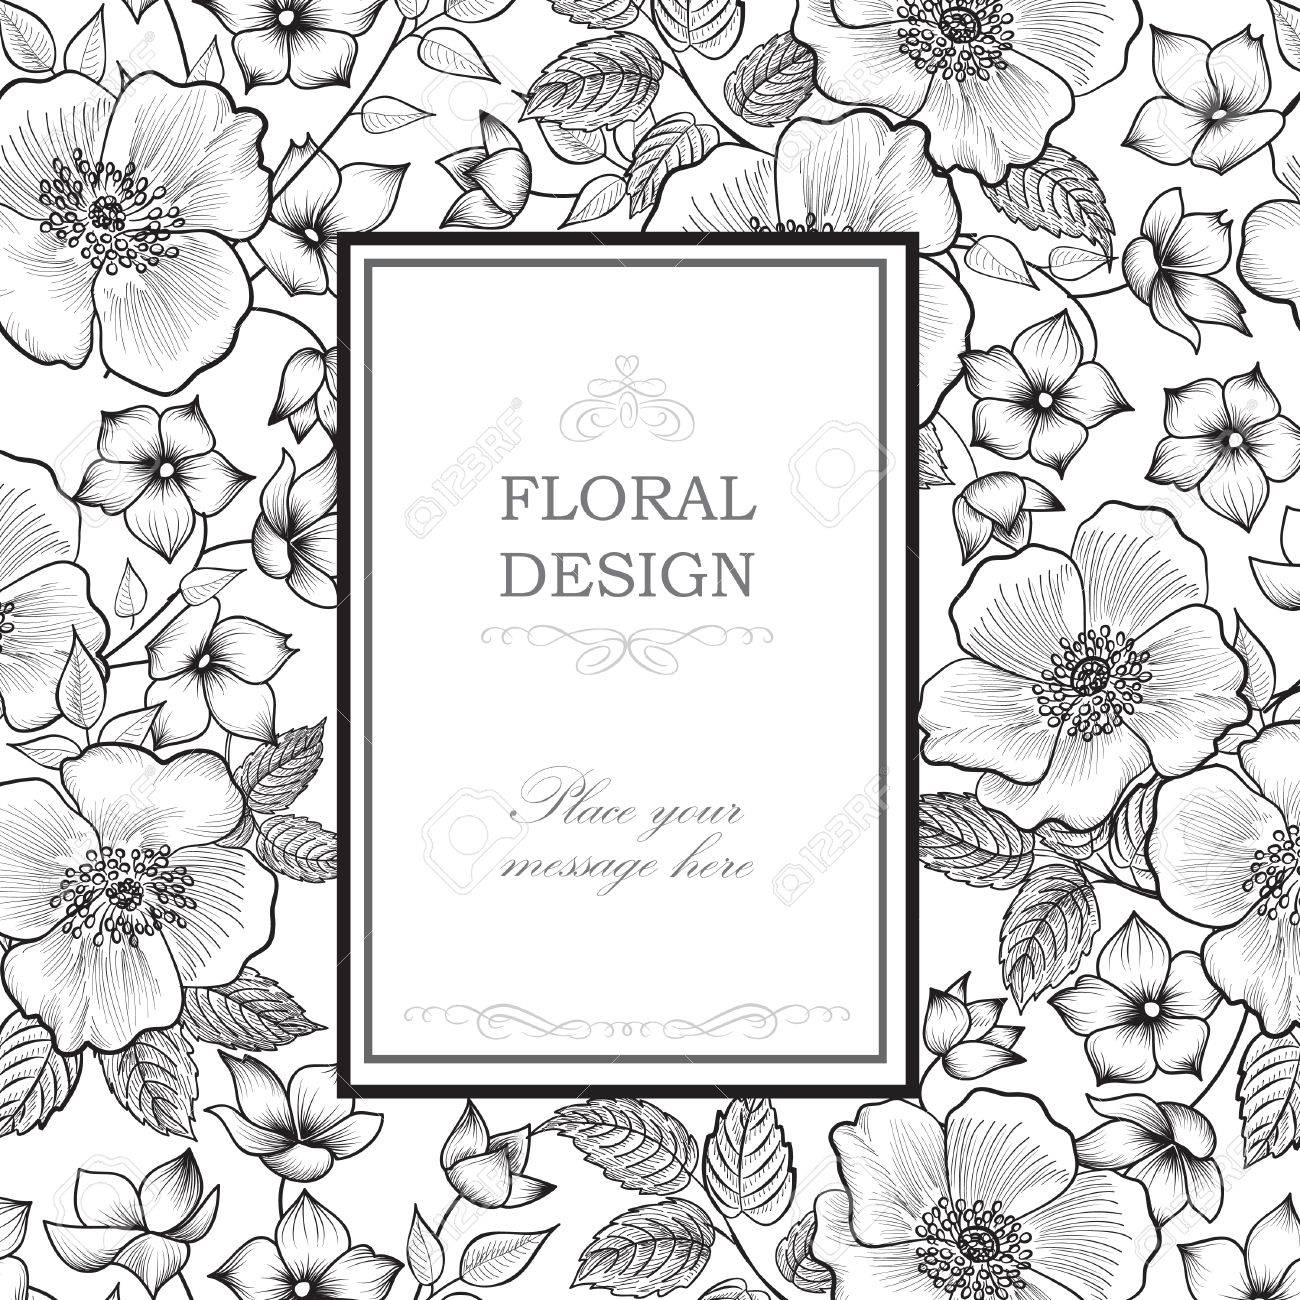 Floral frame with summer flowers. Floral bouquet pattern. Vintage Greeting Card with flowers. Watercolor flourish border. Floral background. Stock Vector - 46921944